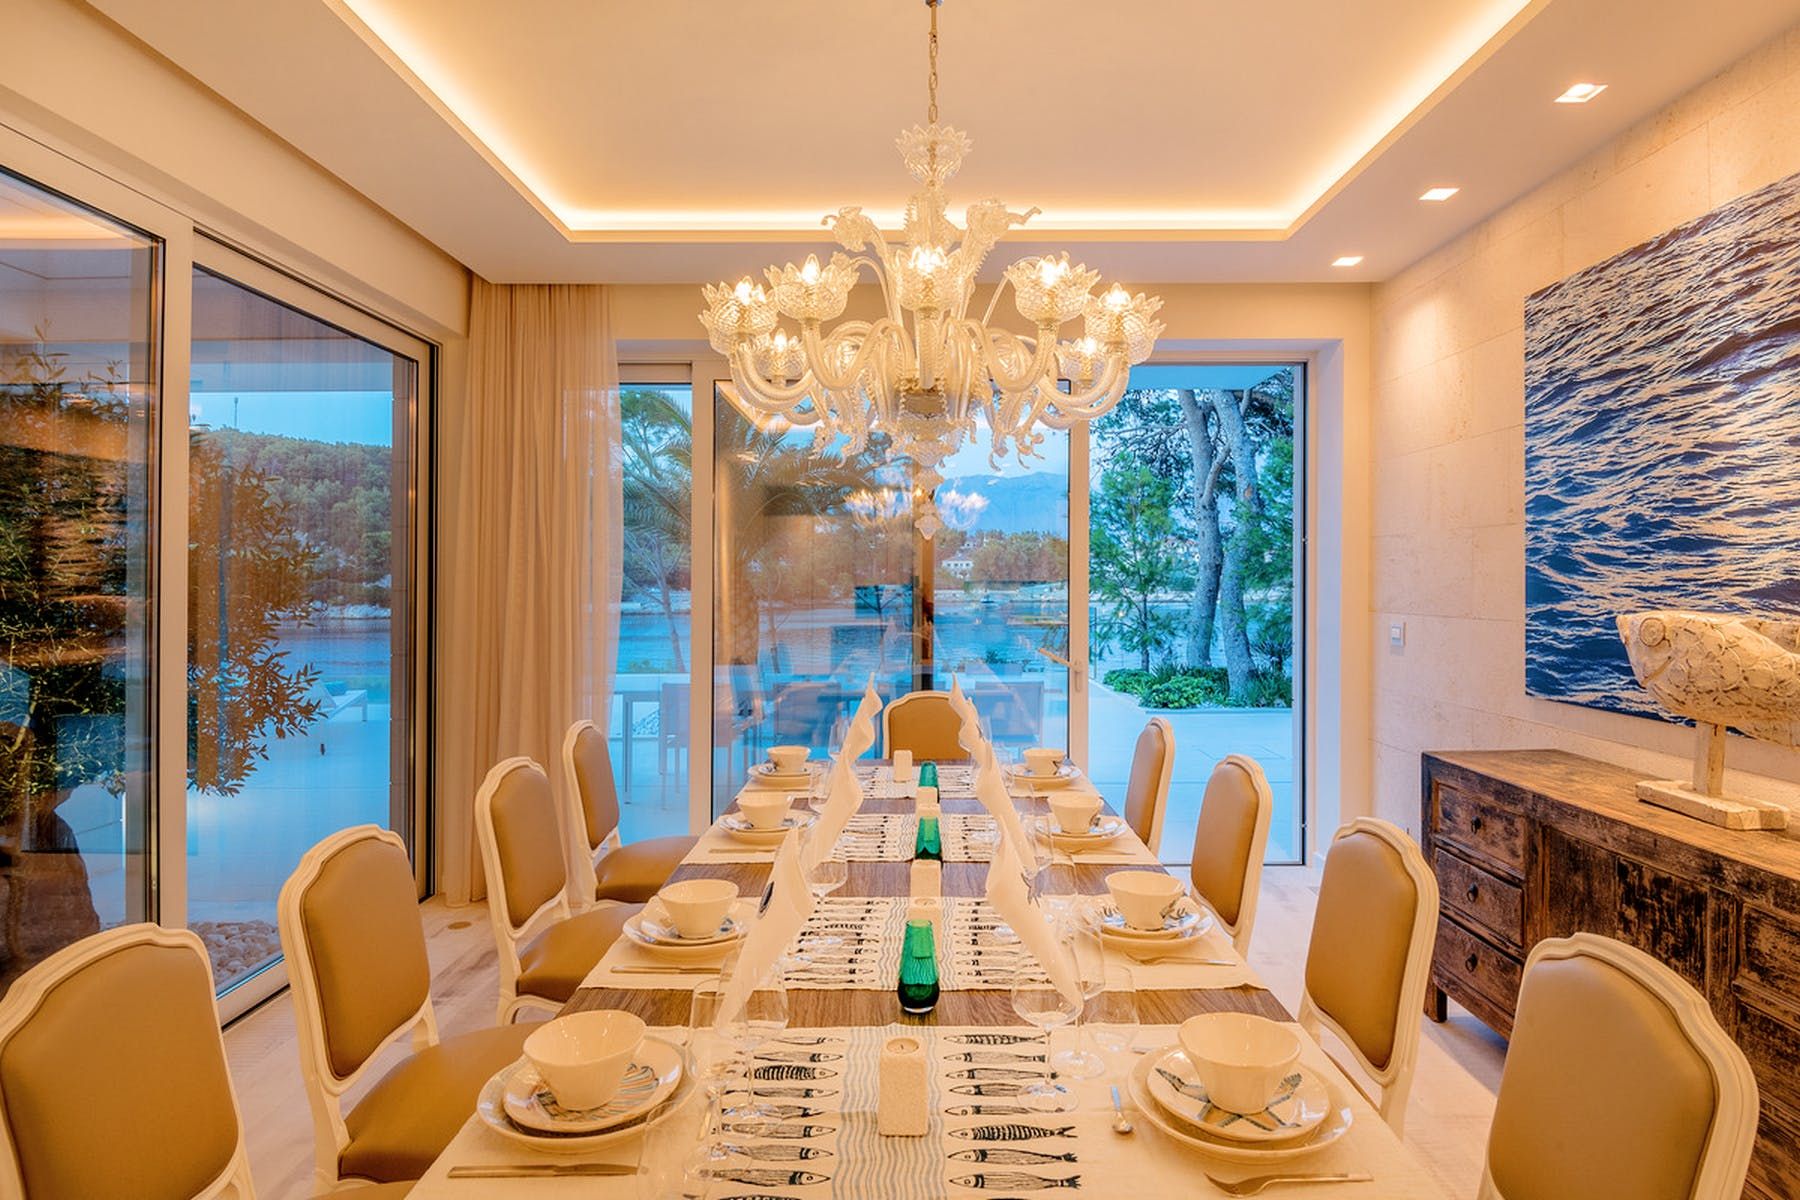 Luxurious dining area with a chandelier